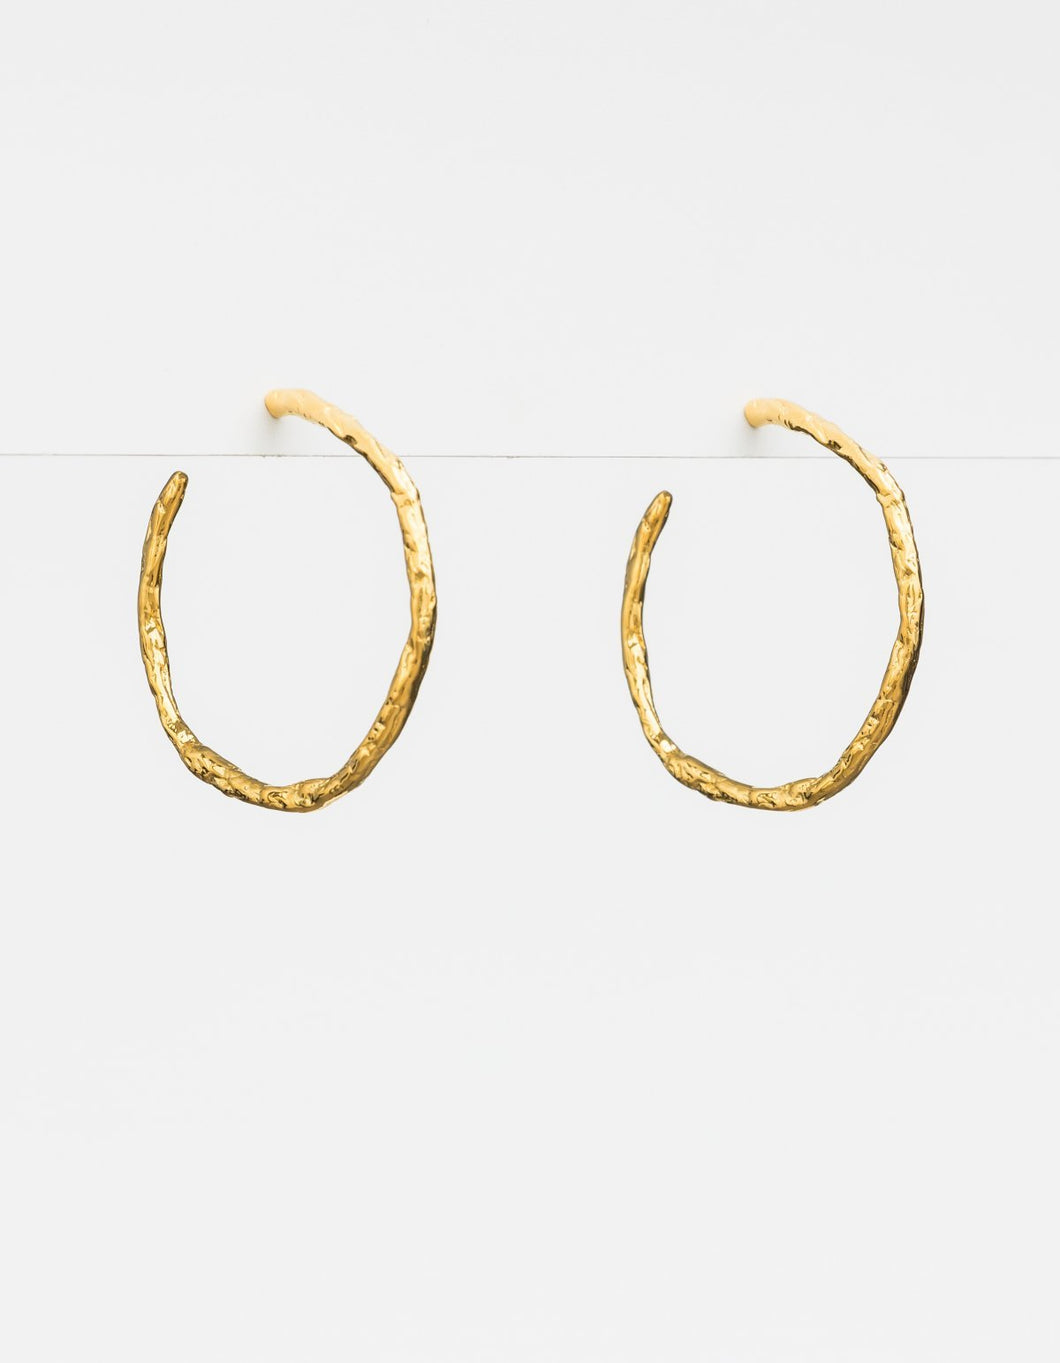 Gold Vine Hoop Earrings